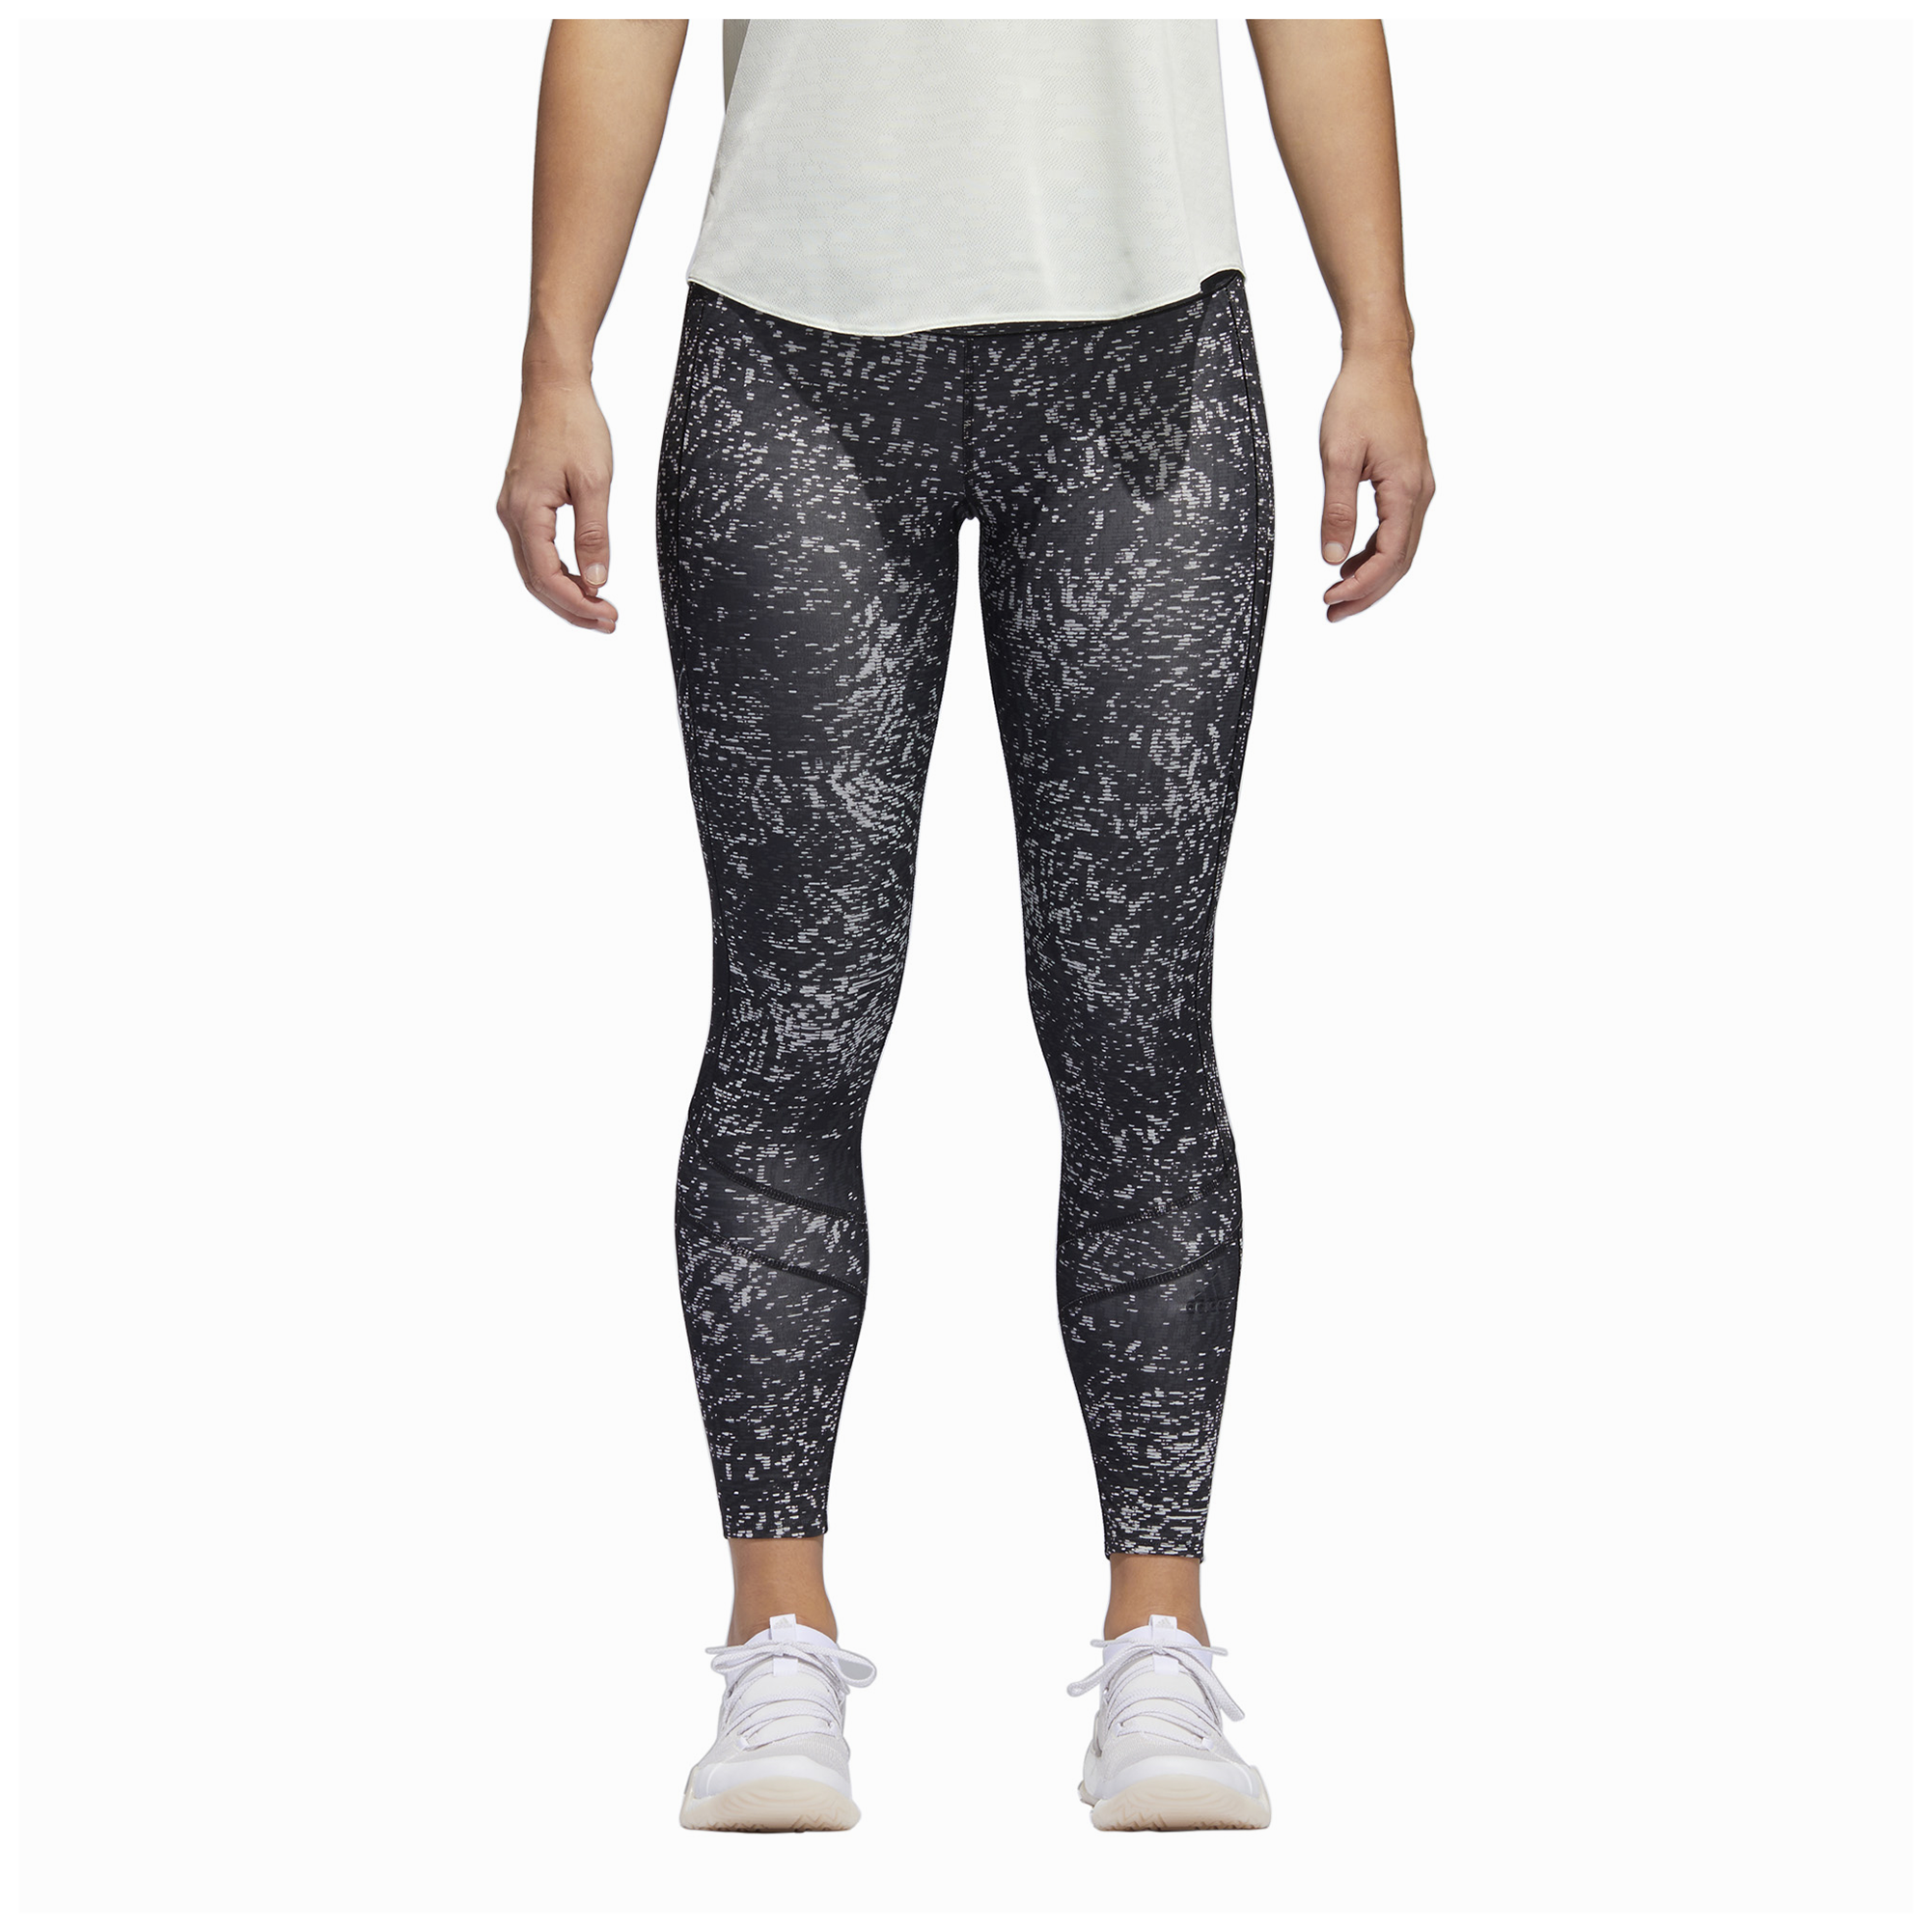 Design adidas Response Running Tights Sportswear for Women Shop Womens Sportswear COLOUR-black